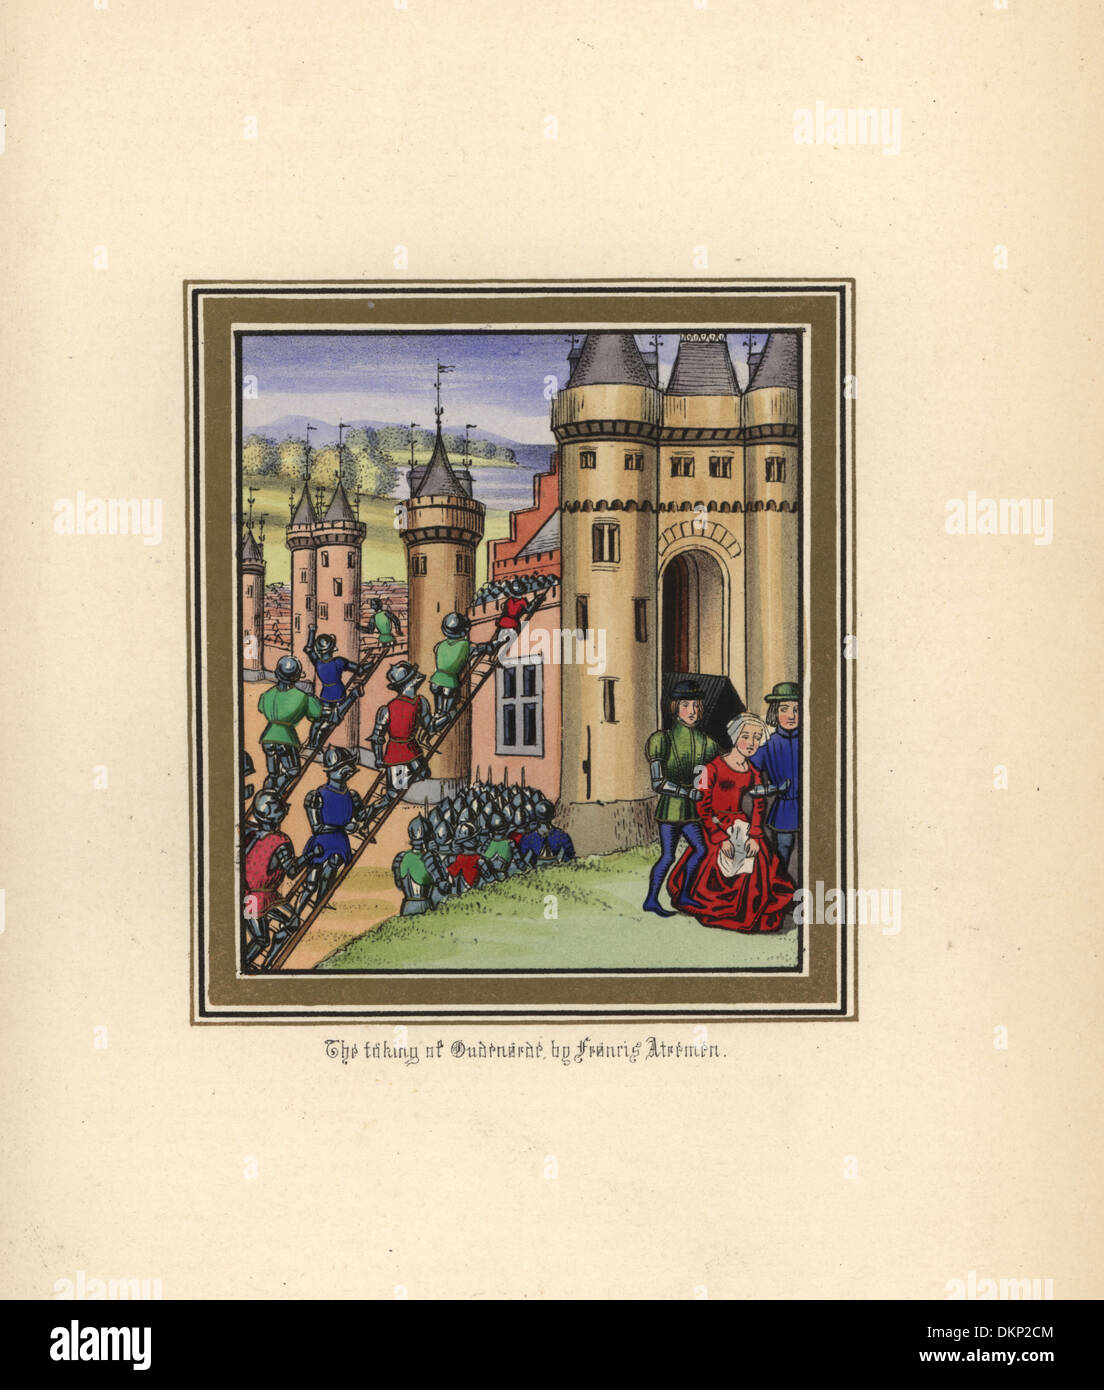 The taking of Oudenaarde in 1382 by Francis Atremen. - Stock Image